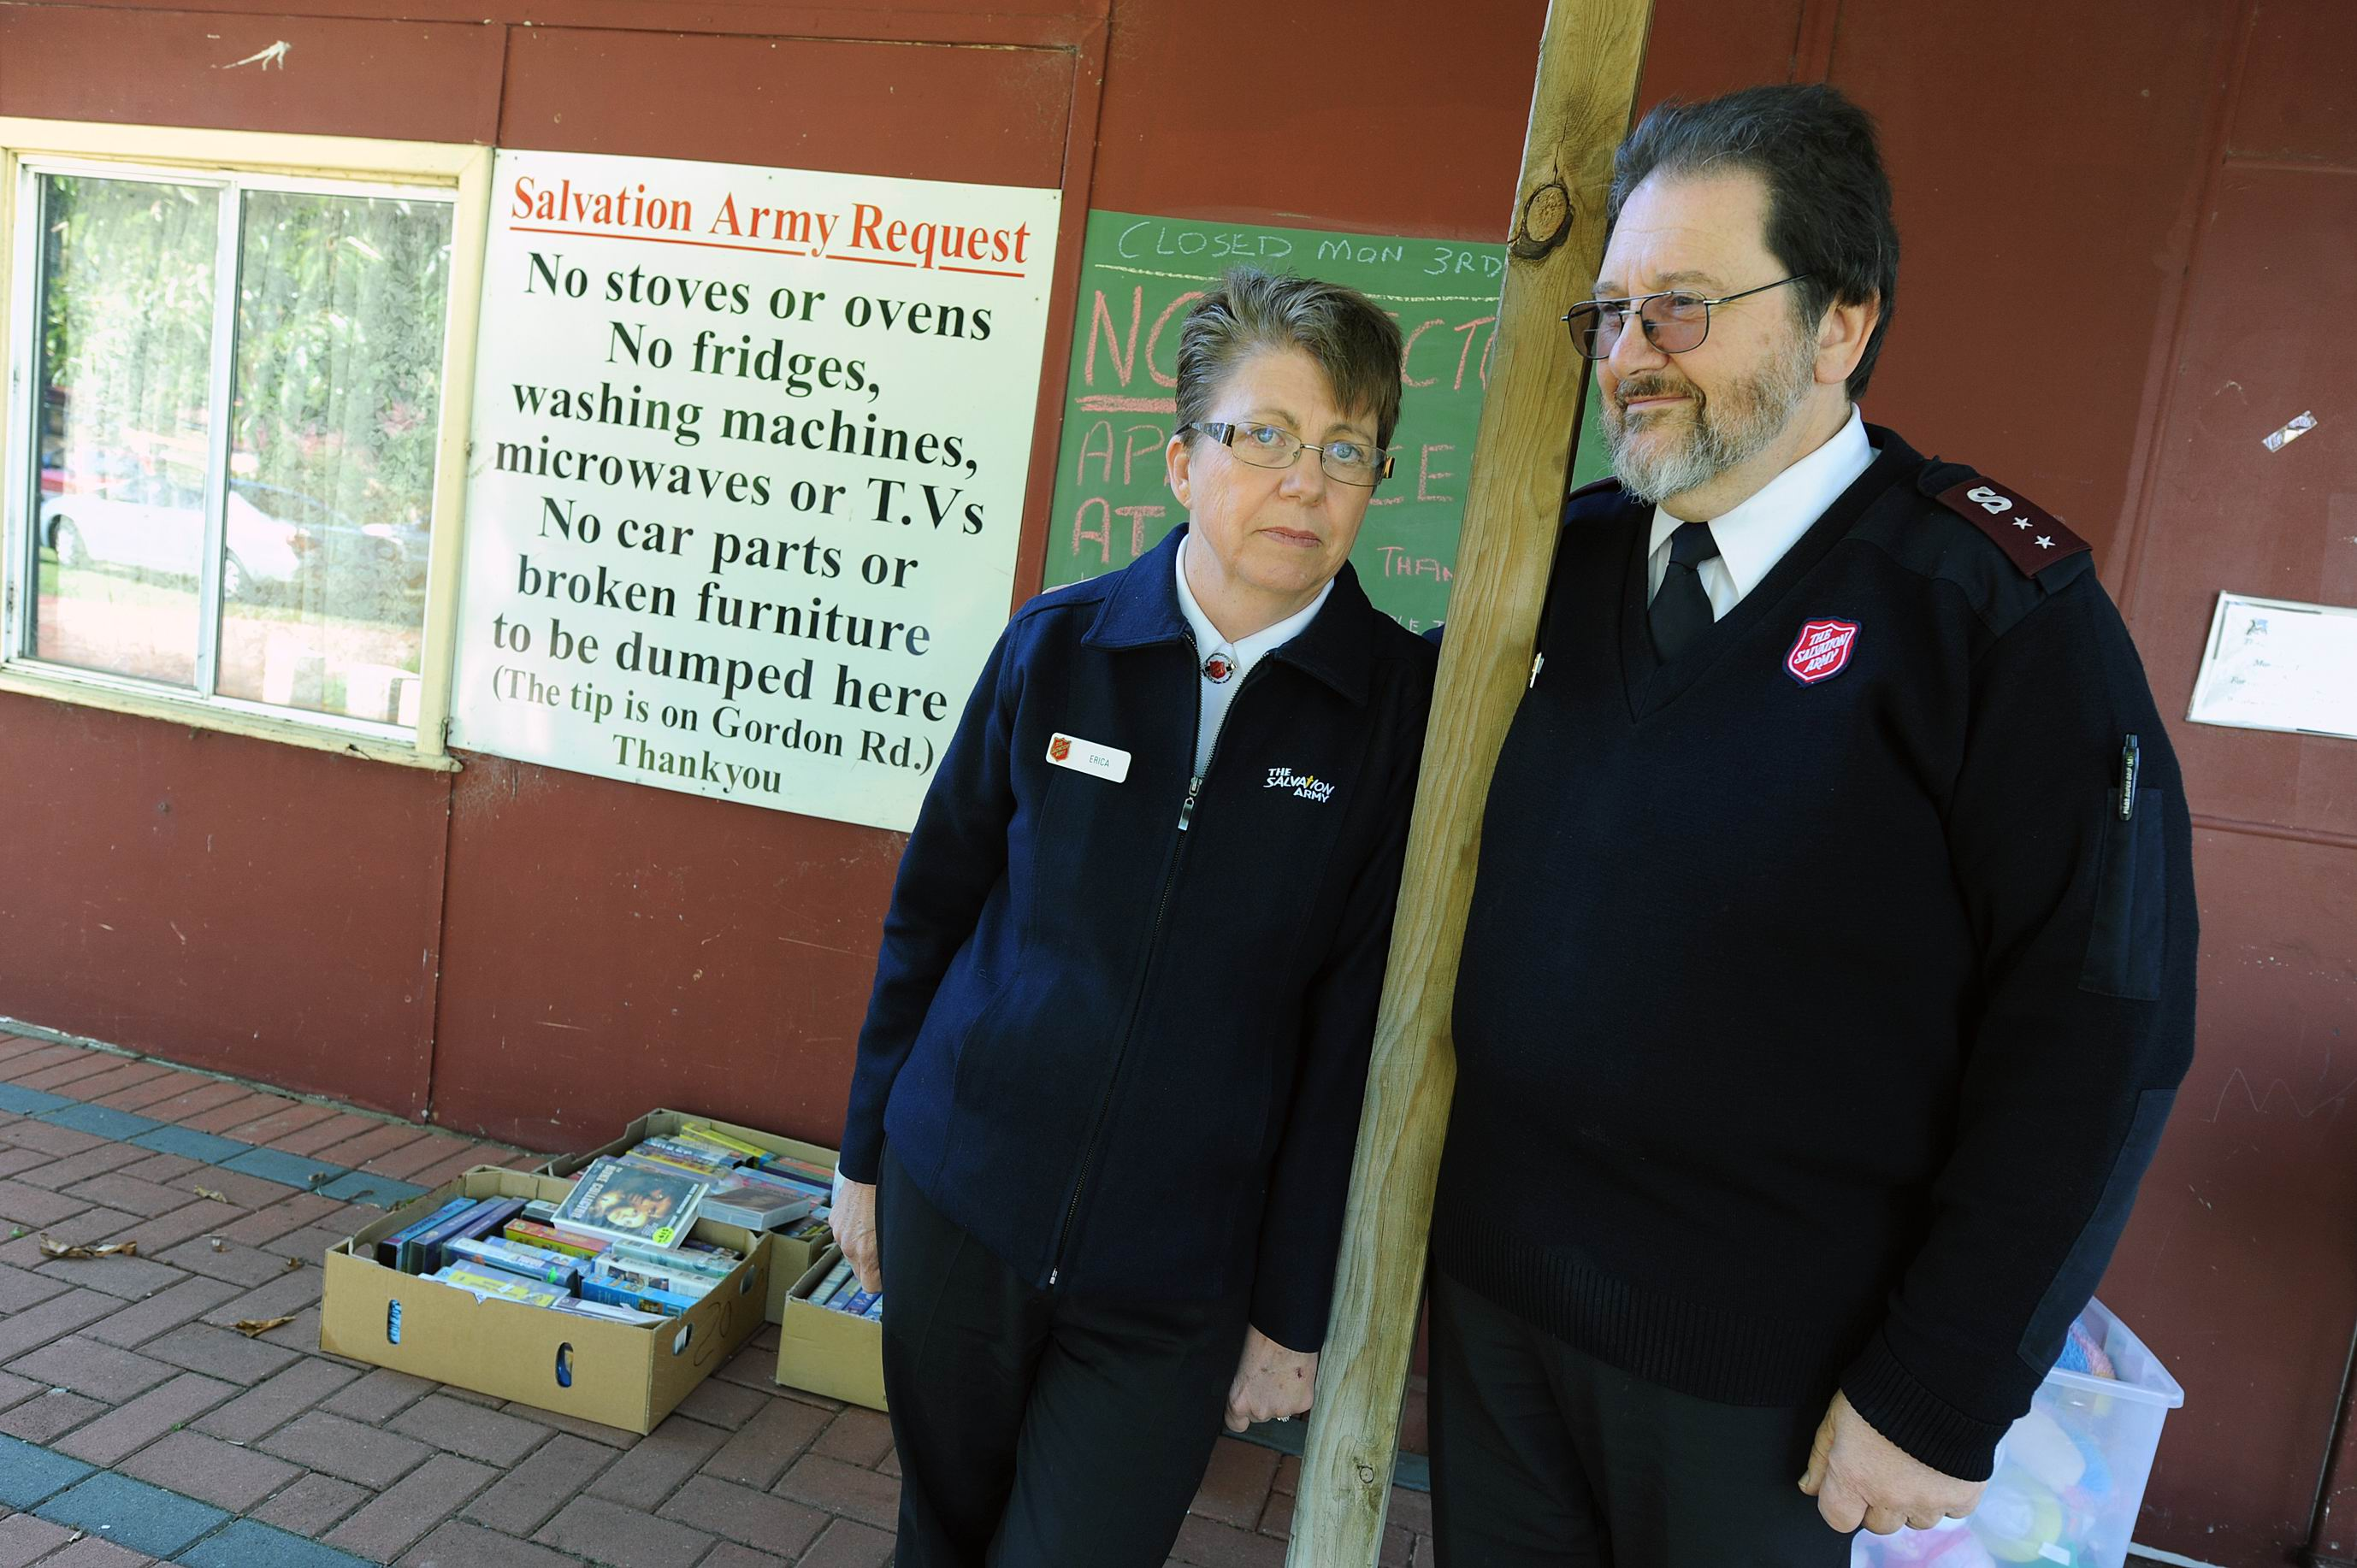 Salvation Army officers Erica and Michael Cossington say another problem is people who steal things donated to the op shop. Picture: Jon Hewson www.communitypix.com.au d402416